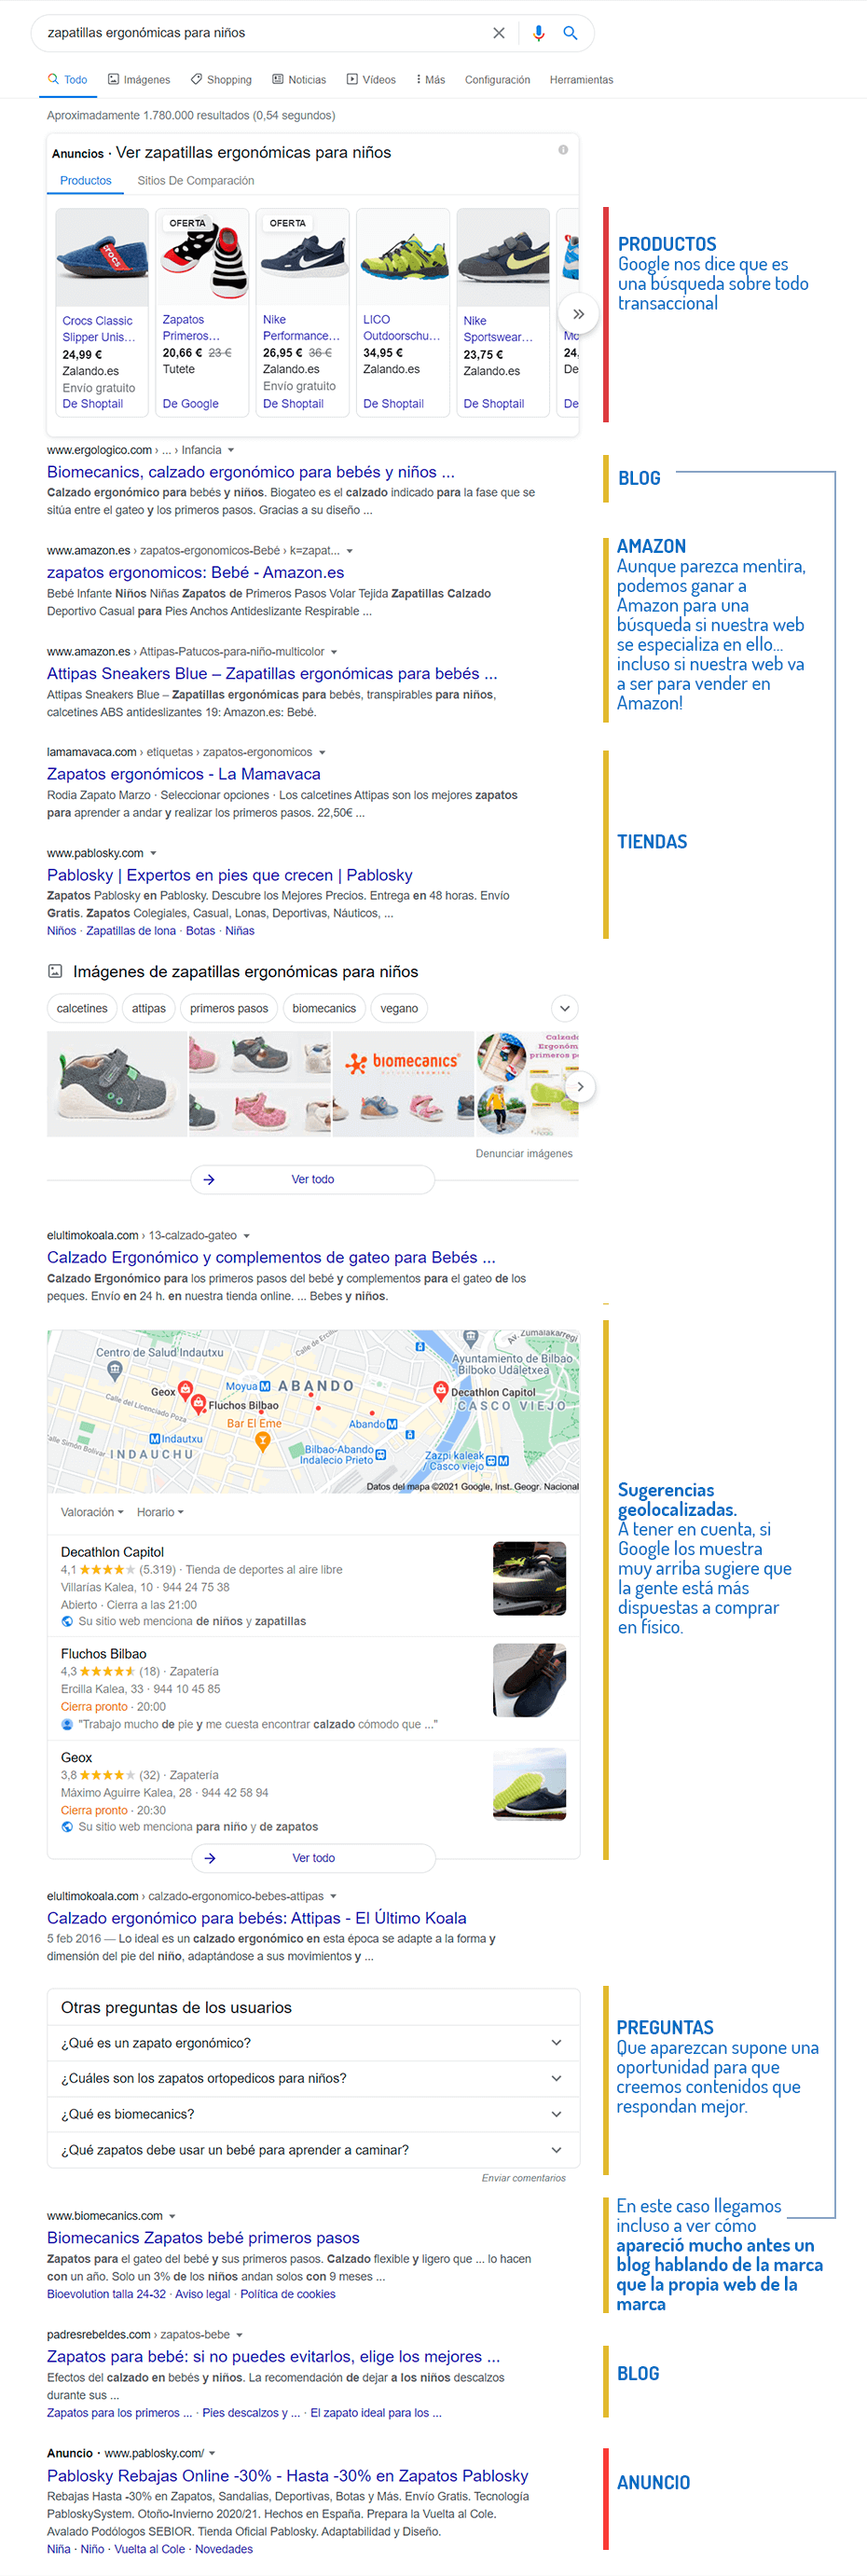 keyword research SERPS